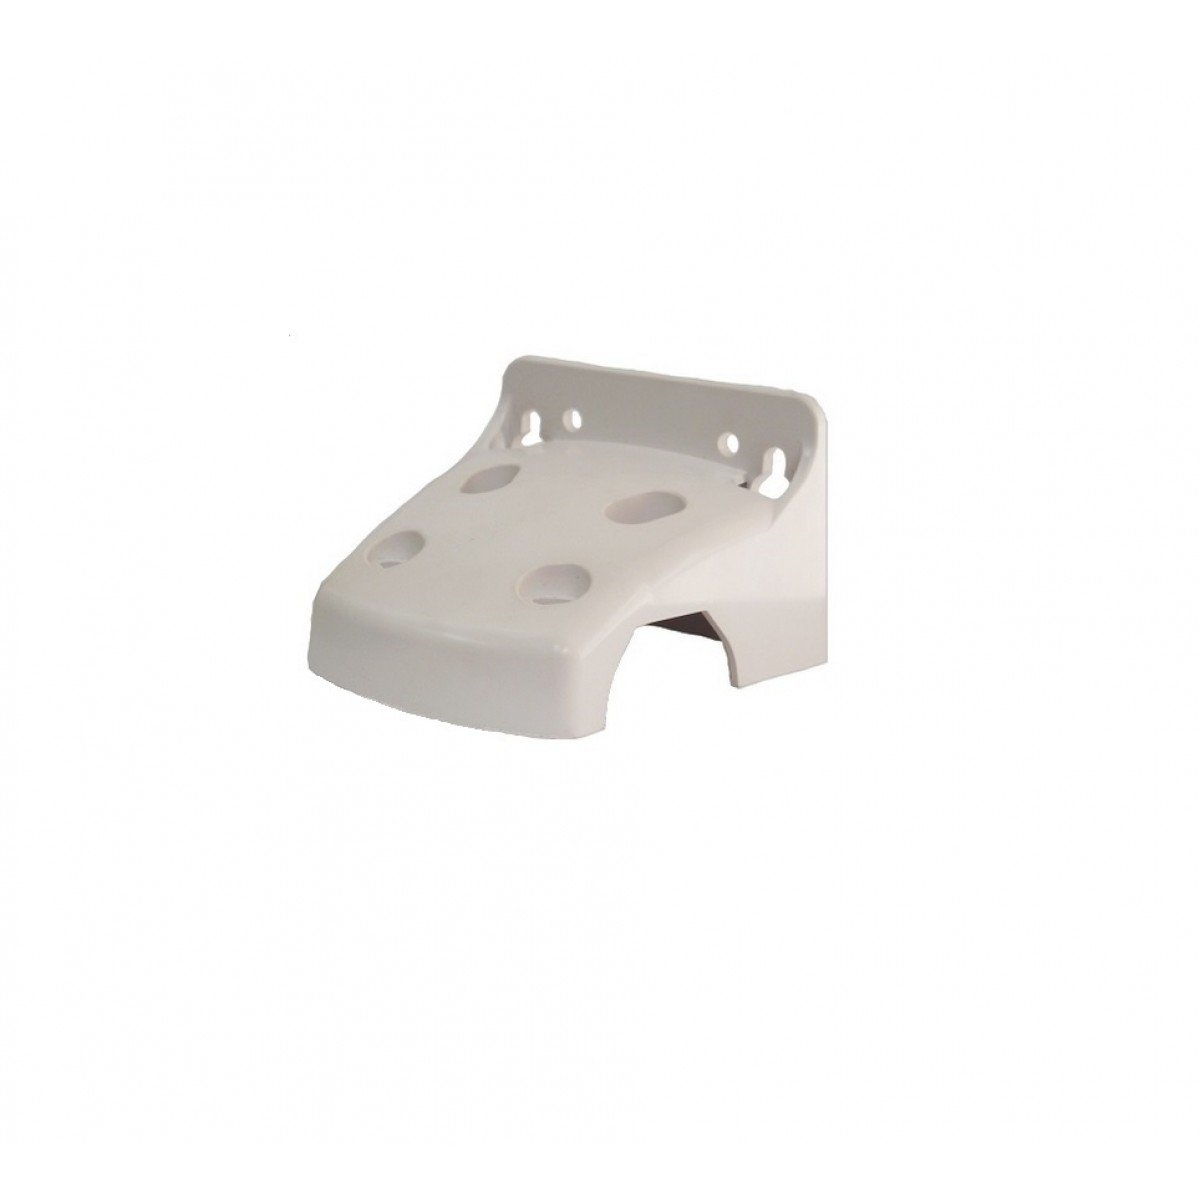 Q-BRACKET Omnipure ELF, Q, and E-Series Filter Mounting Bracket, 10 pack